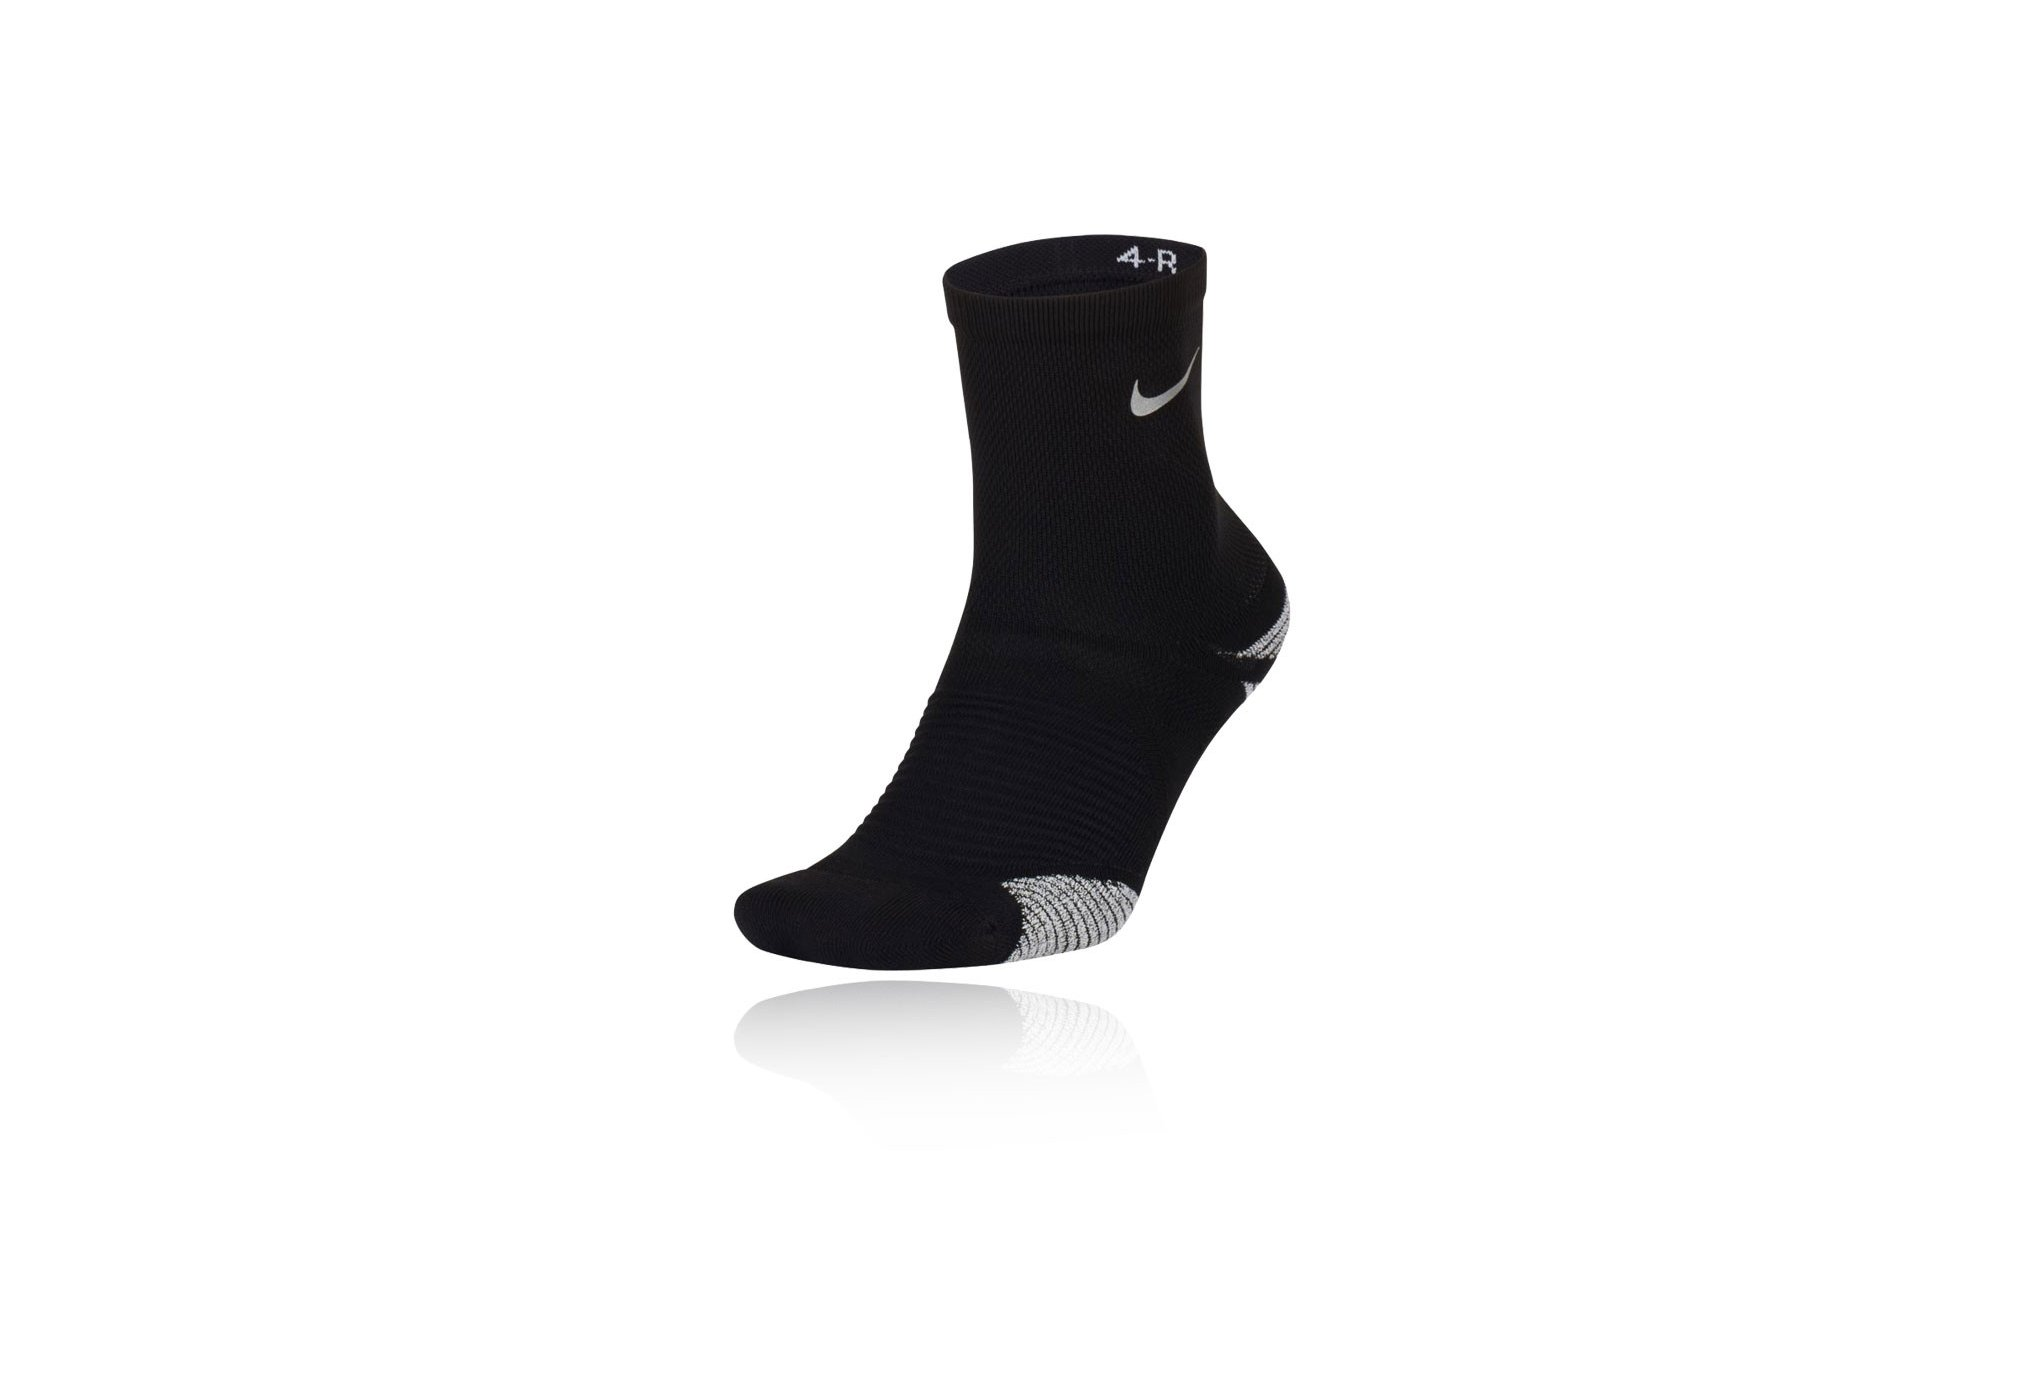 Nike Grip Racing Chaussettes